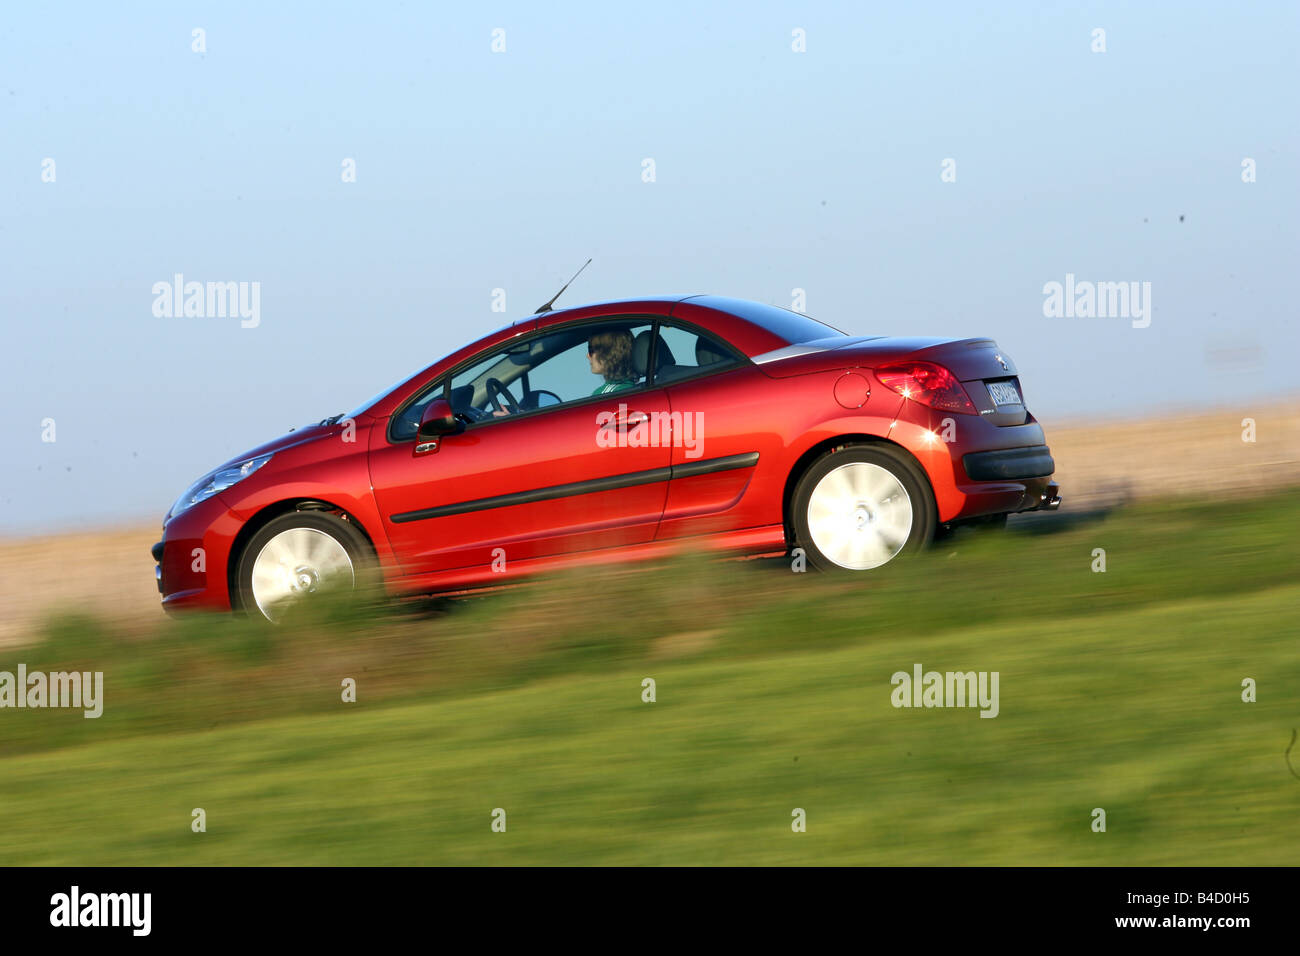 Peugeot 207 CC, model year 2007-, red, driving, side view, country road, closed top Stock Photo